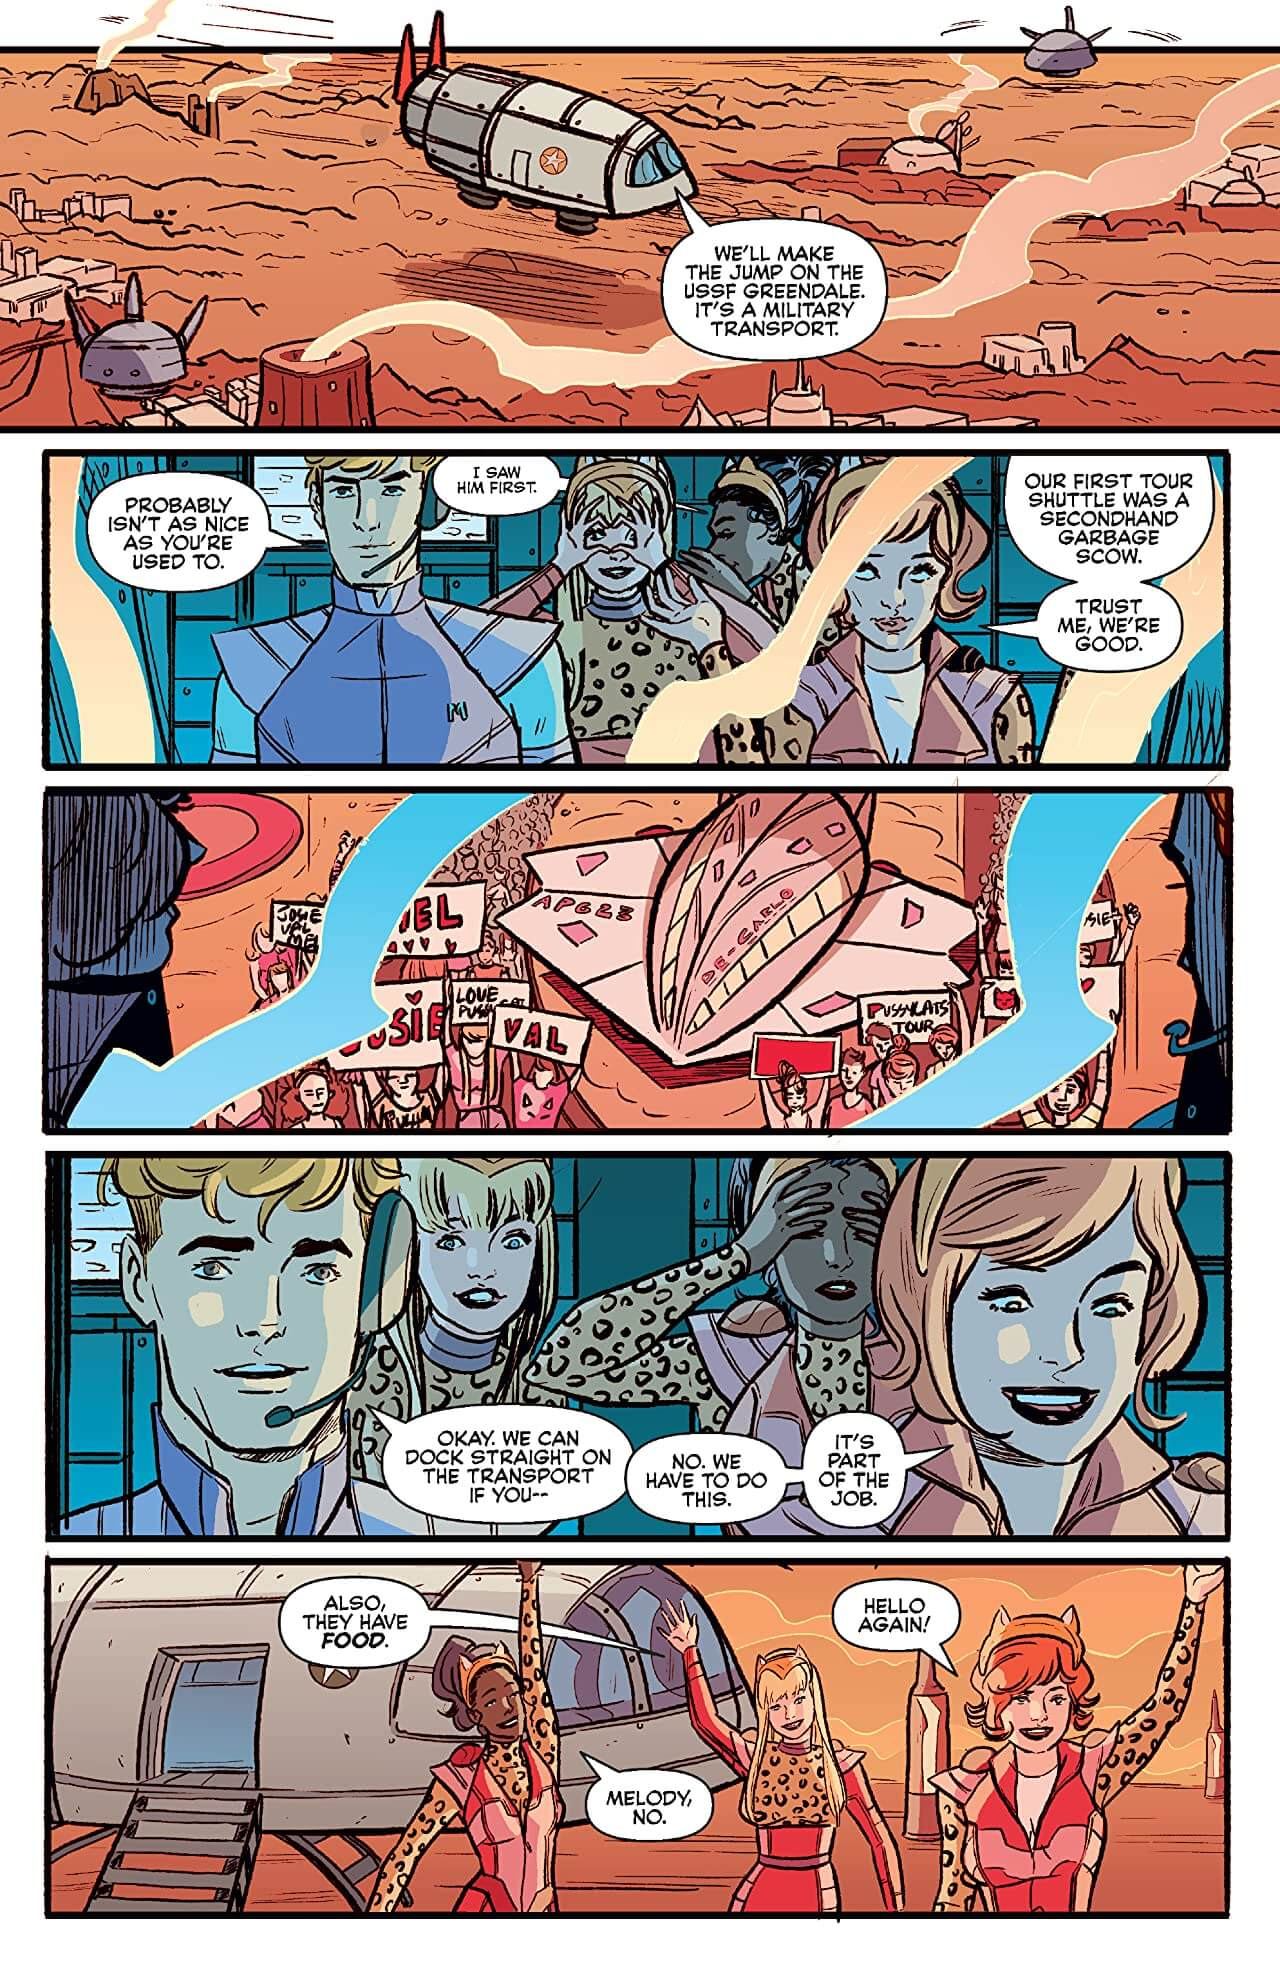 Josie and the Pussycats in Space Page 6. Archie Comics. April 2020